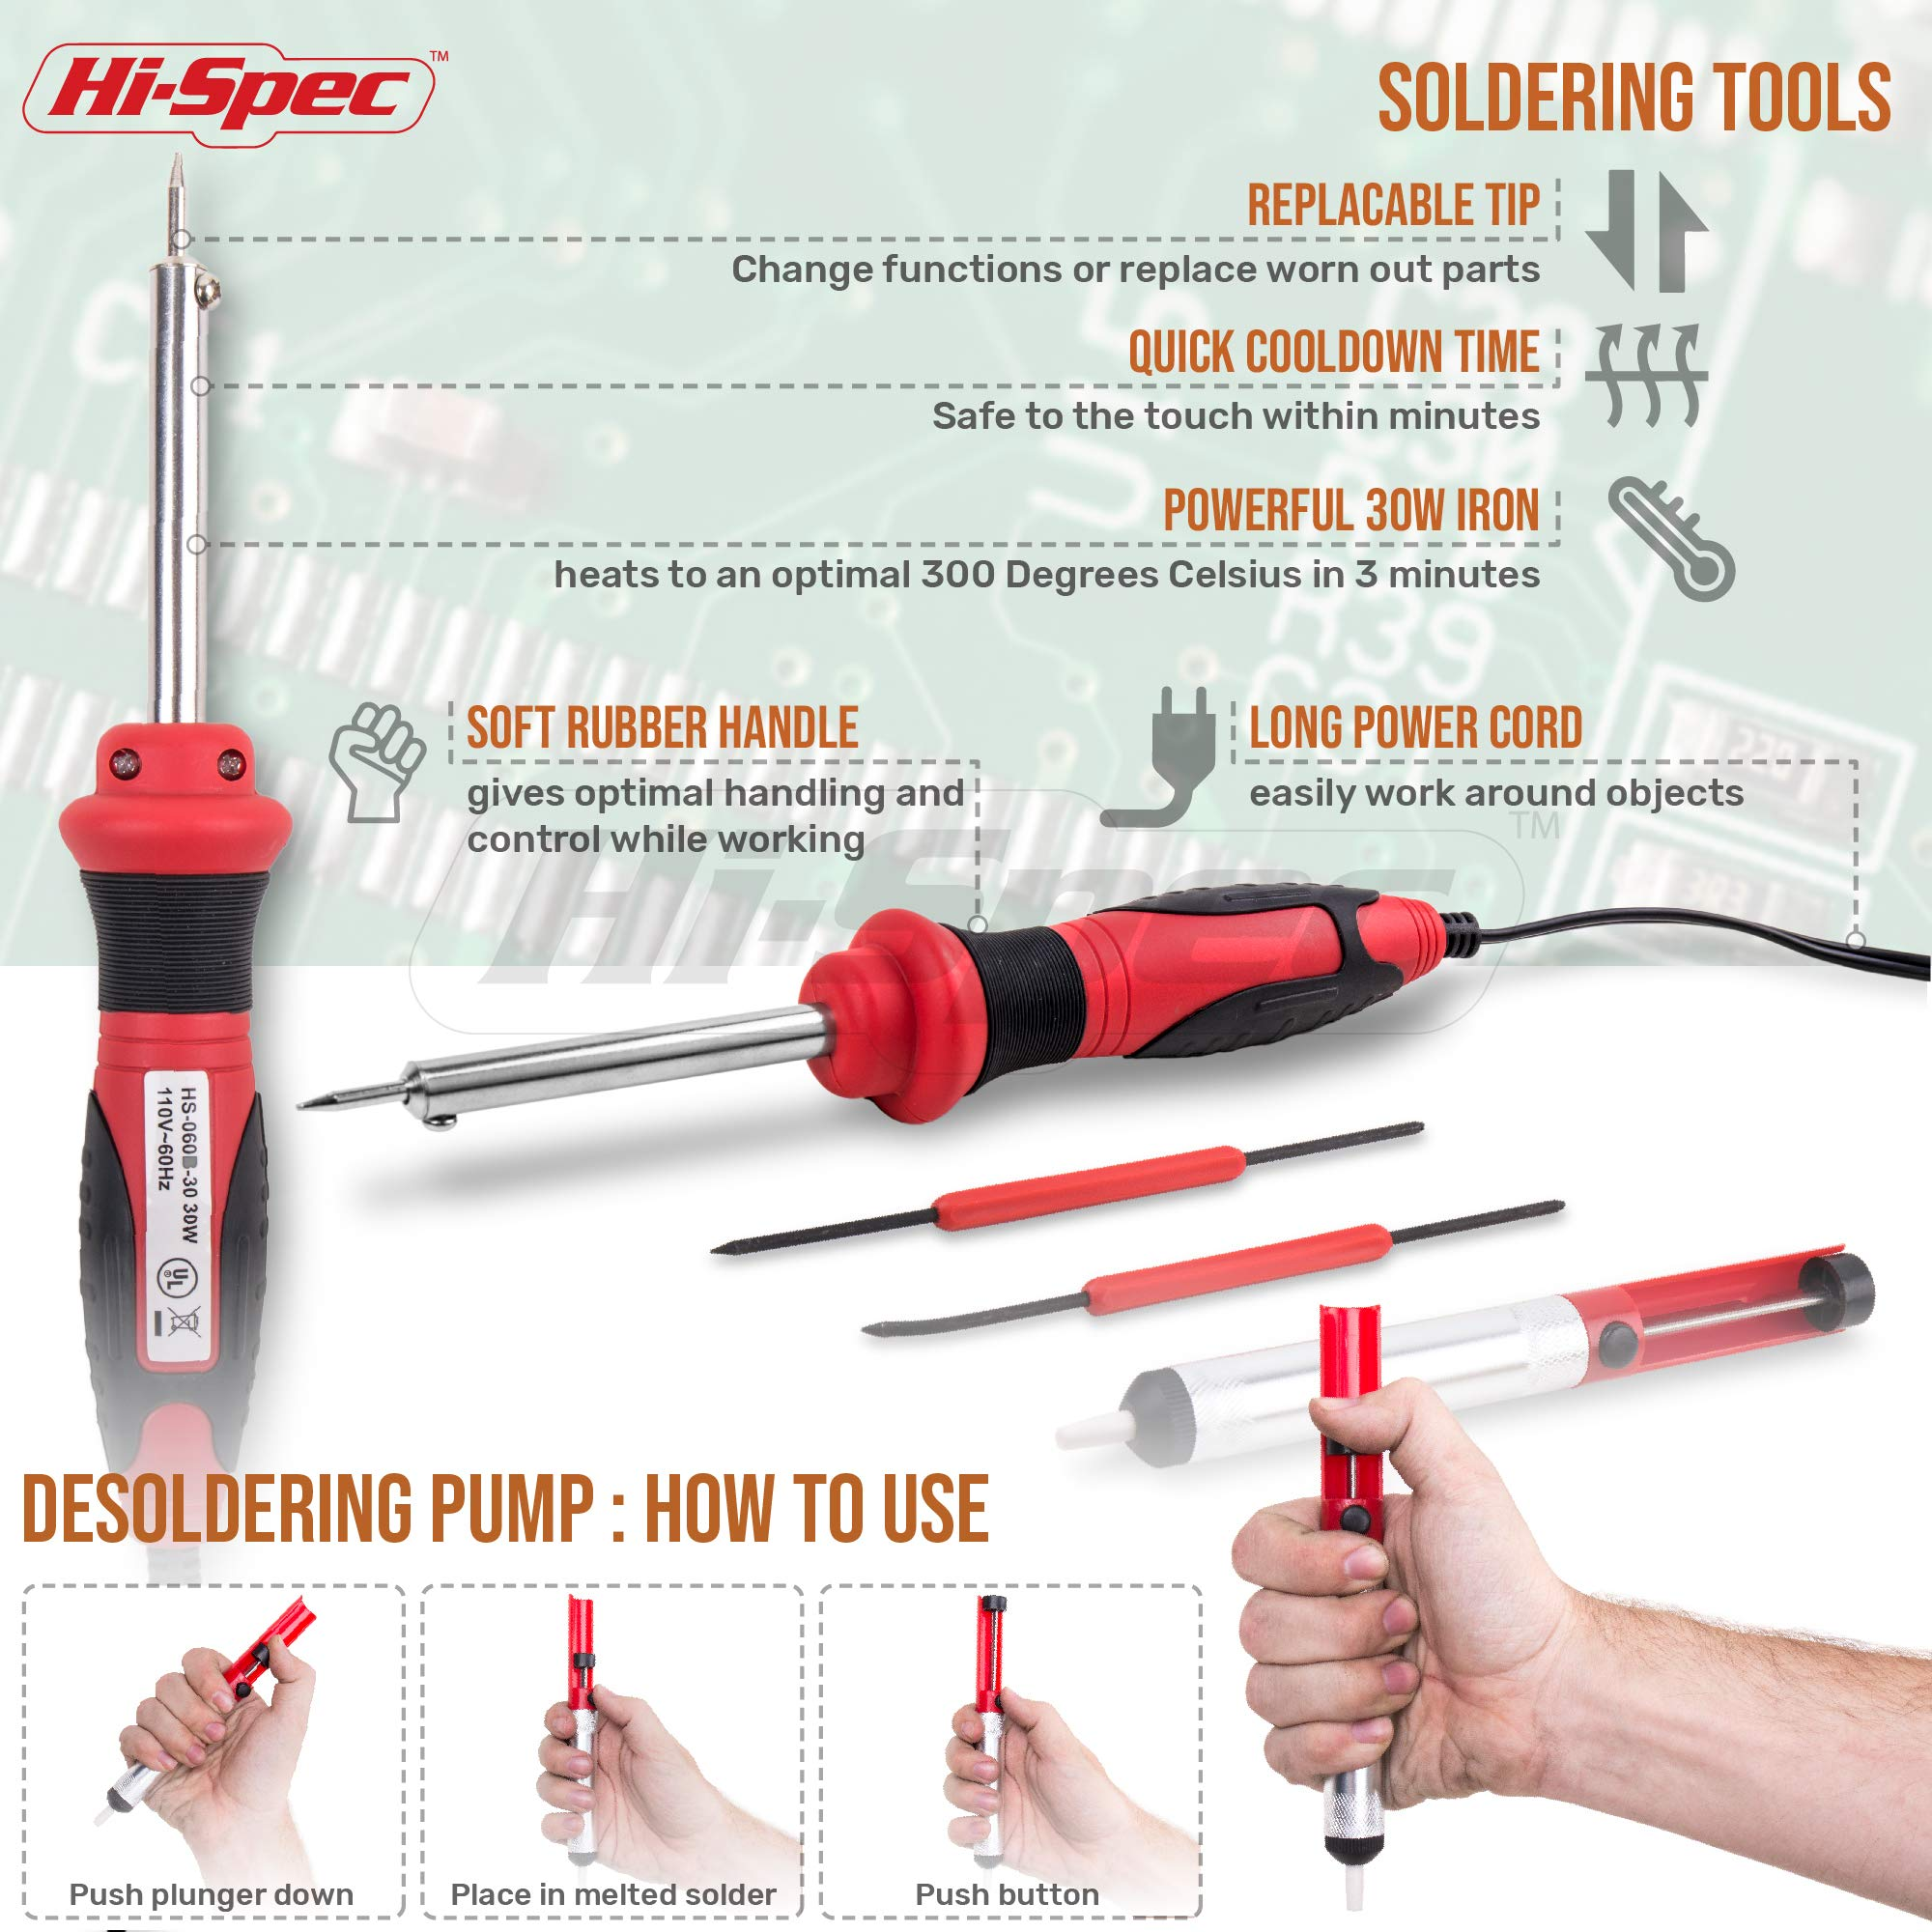 Hi-Spec All-In-One 30W Soldering Station inc. Soldering Iron, Helping Hands & 9pc Accessory Set - Desoldering Pump, Tin Alloy Solder, De-Solder Alloy & 2pc Solder Assist Tools by Hi-Spec (Image #3)